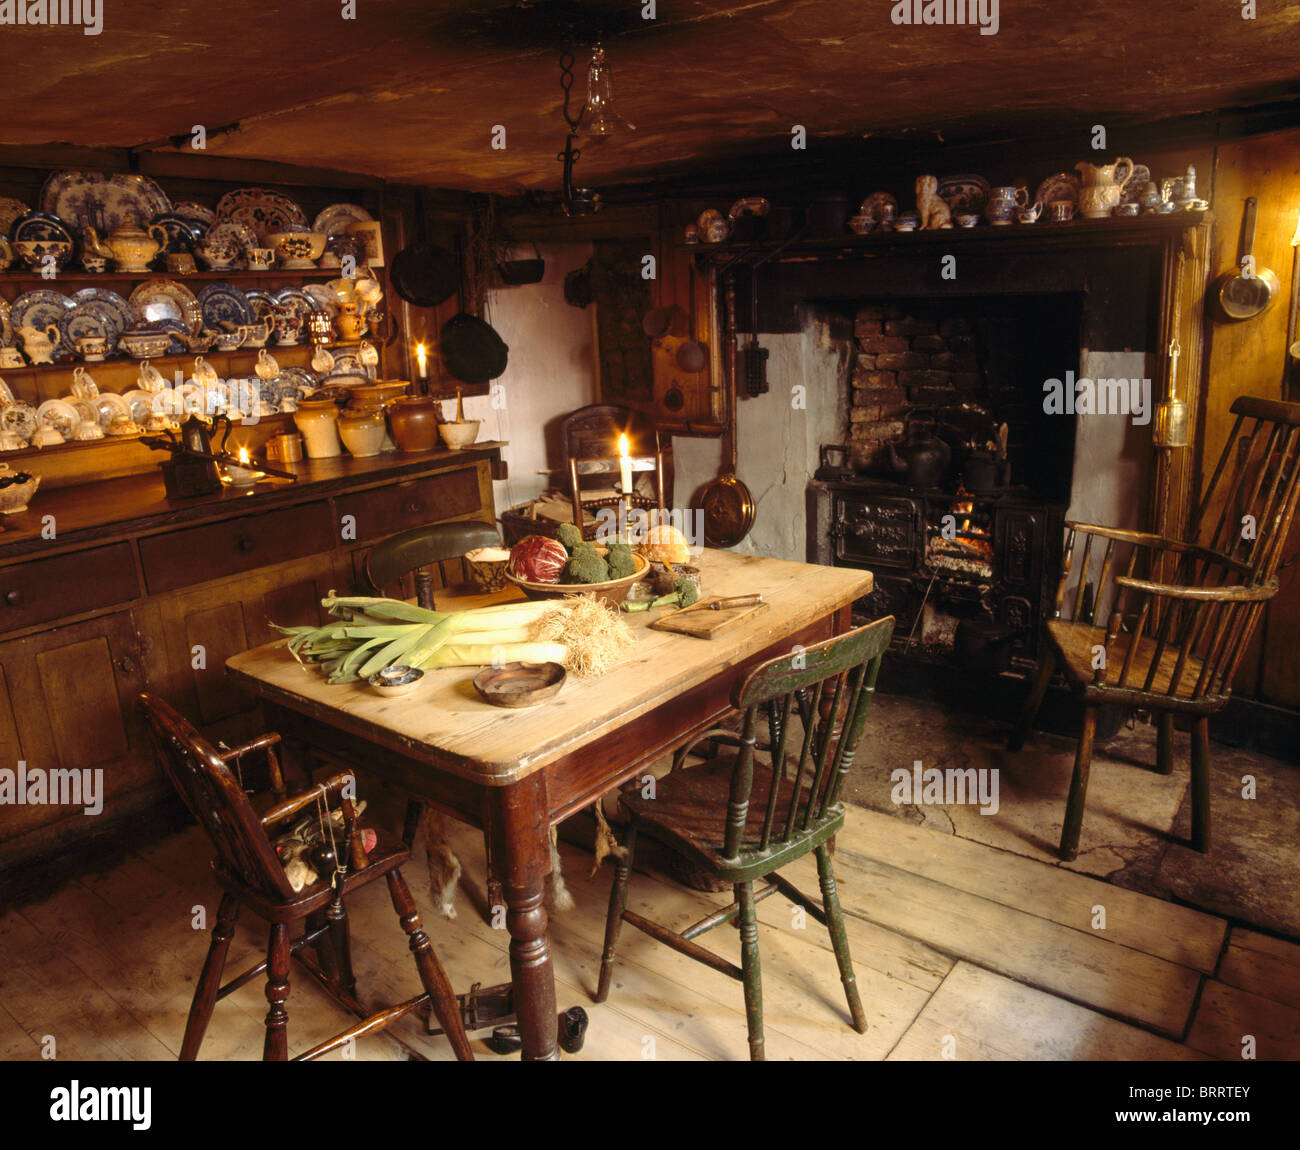 Old Pine Table And Dresser In Fashioned Kitchen Dining Room With Antique Windsor Chair Beside Fireplace Lighted Fire